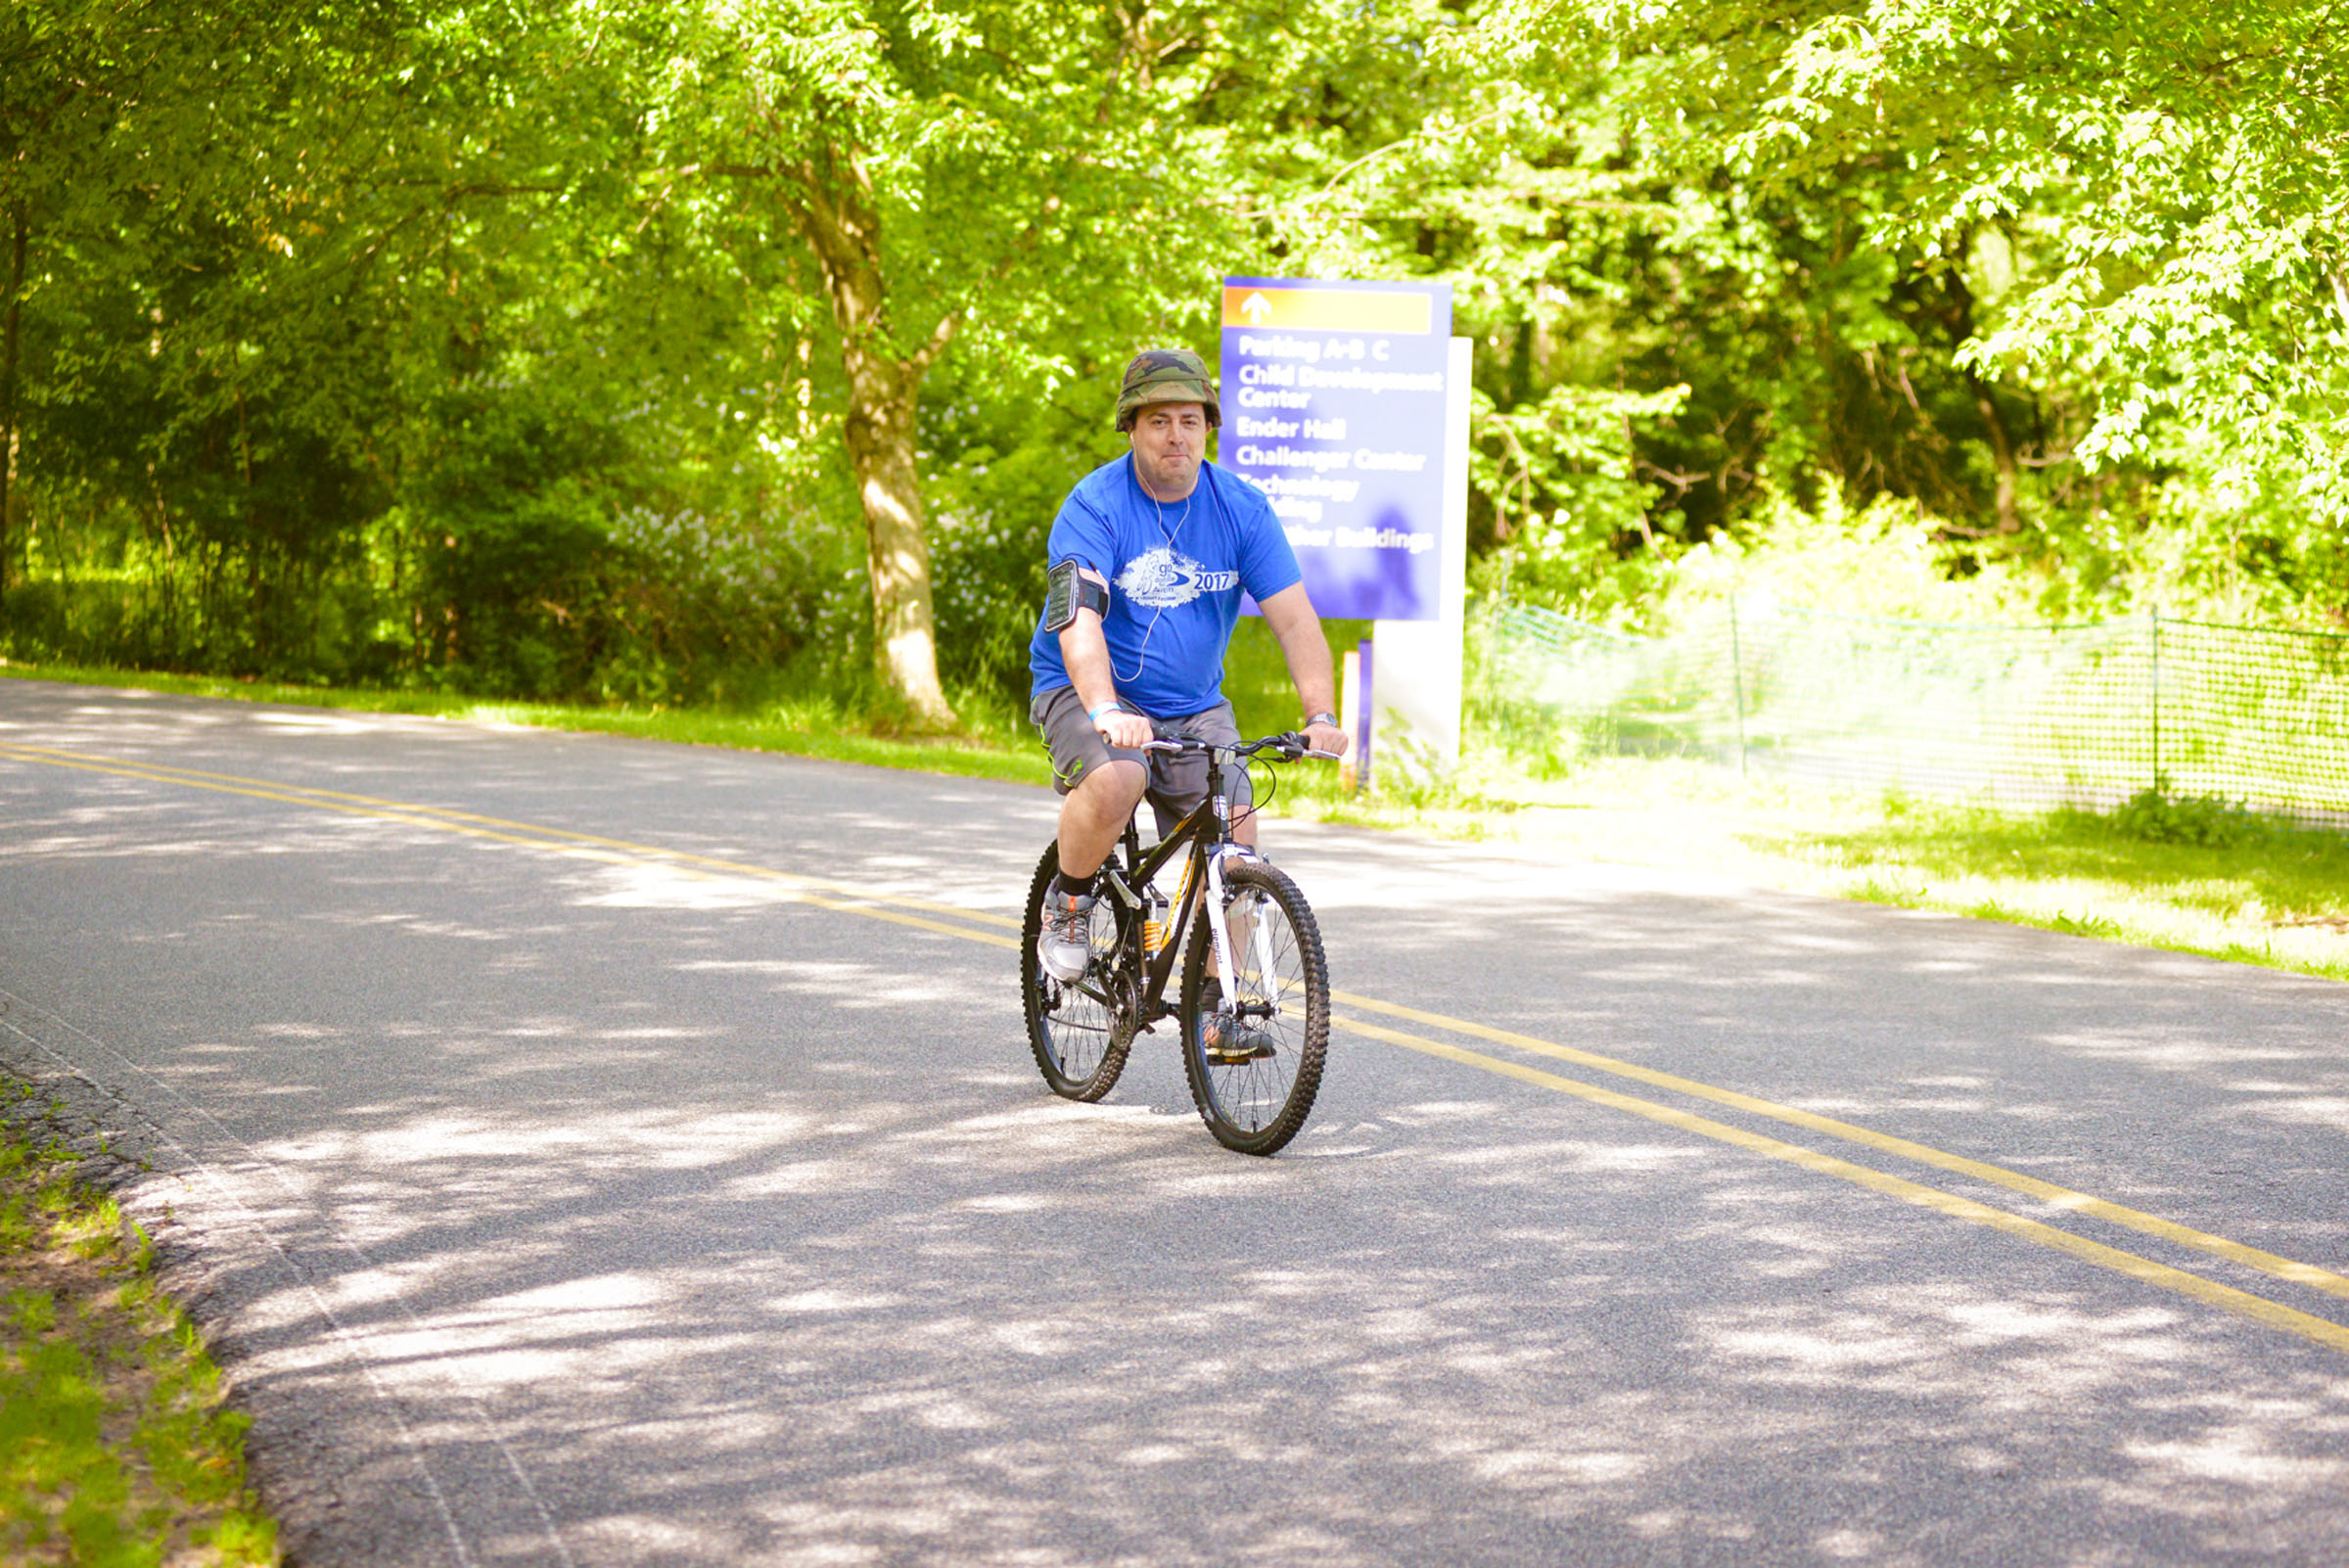 2017-06-04 GTD4A Charity Bike Ride - BCC - Paramus NJ-2094.jpg